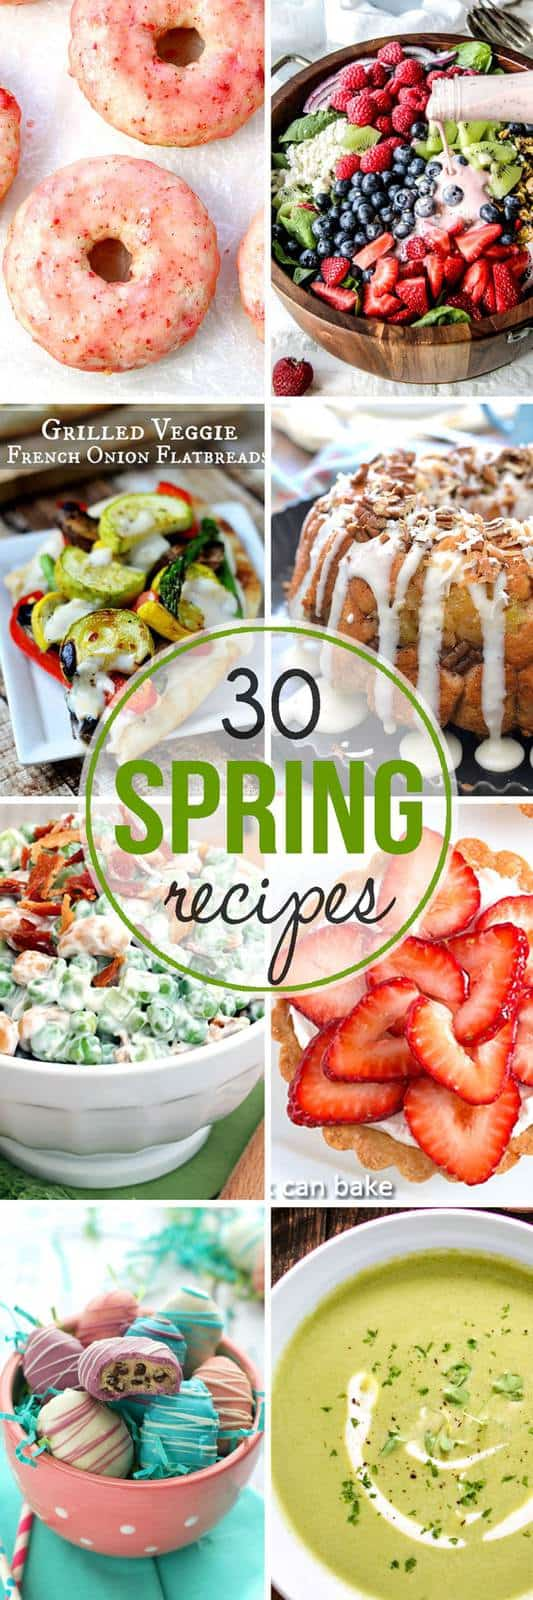 30 Spring Recipes - breakfast or brunch, salad or snacks, dinner or desserts, you'll find it all in this collection with all the flavors, ingredients, and colors of the season! | cupcakesandkalechips.com